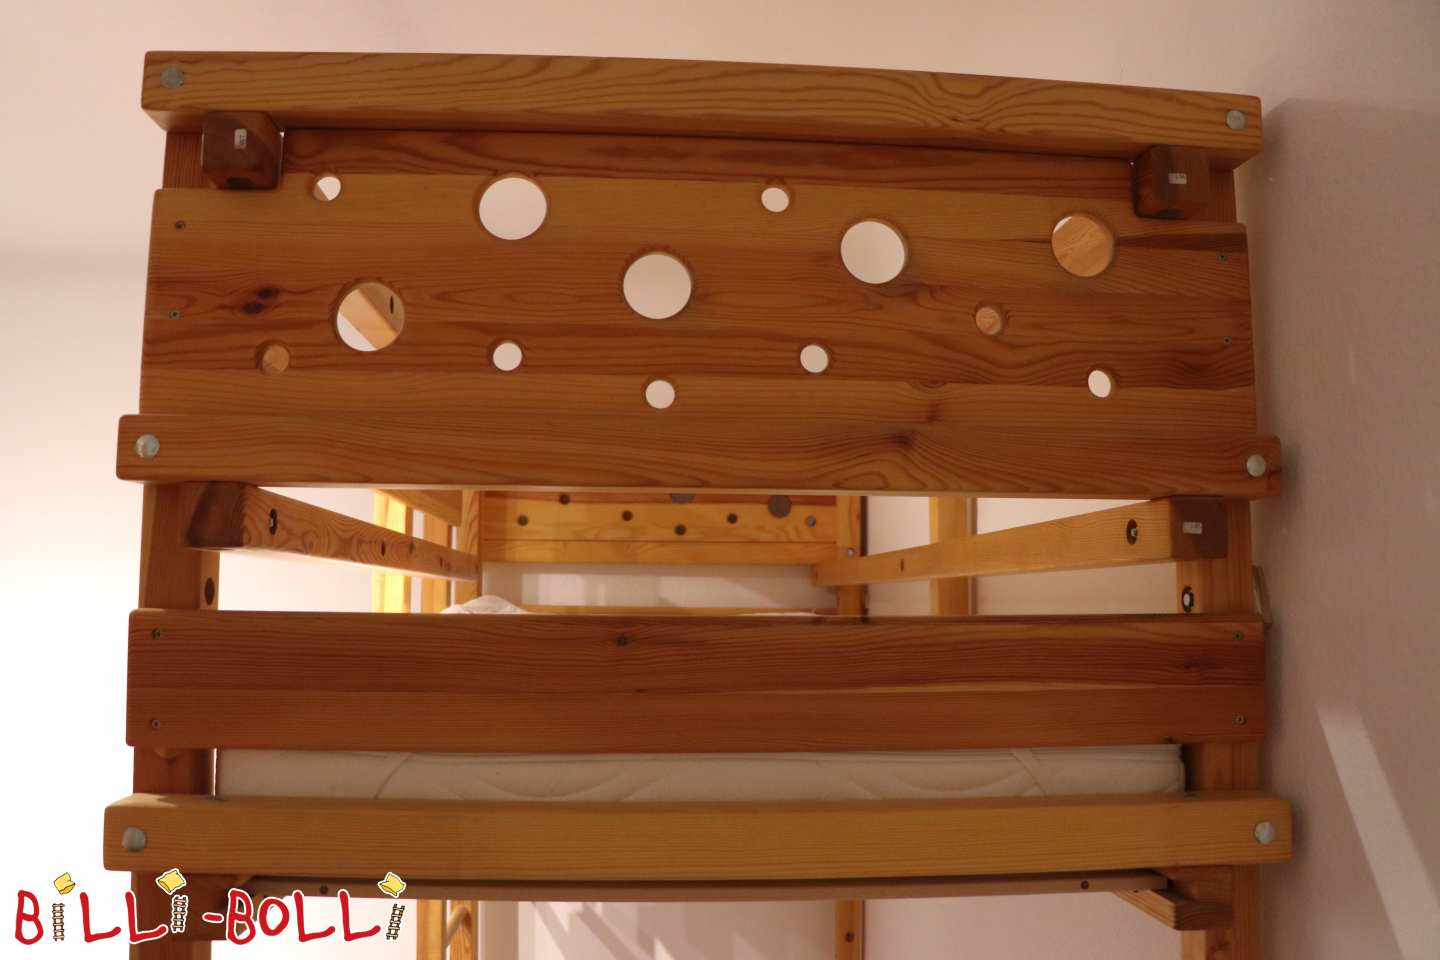 Growing bunk bed 90 x 200 cm with extra-high feet (Berlin) (second hand loft bed)